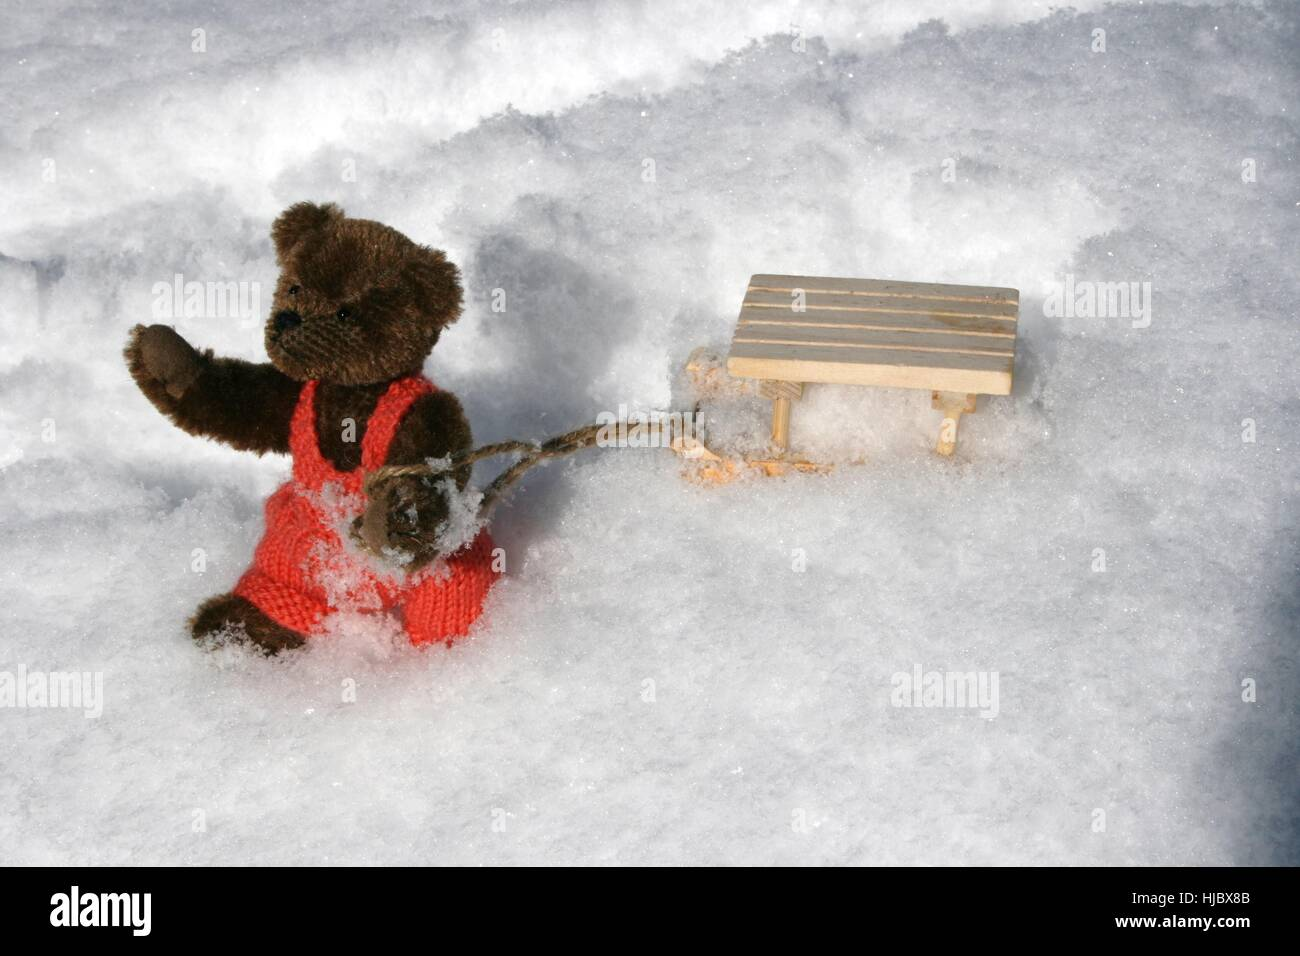 Winter bear cold teddy teddy bear teddybear sledge cash cold winter bear cold teddy teddy bear teddybear sledge cash cold cash altavistaventures Images